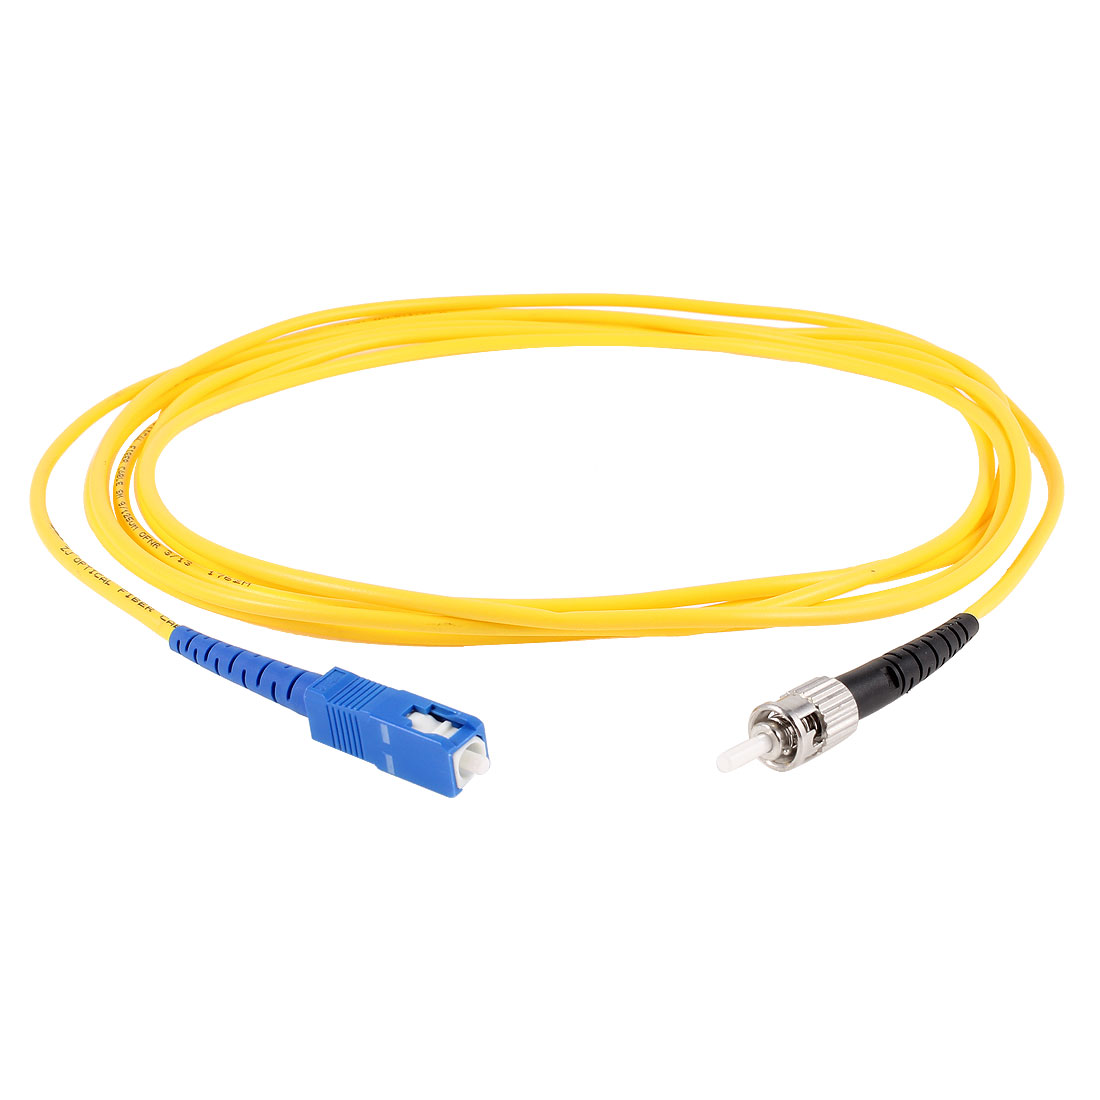 Yellow SC to ST Fiber Patch Cable Cord Jumper SX SM 9/125 3.0 3Meter 10ft